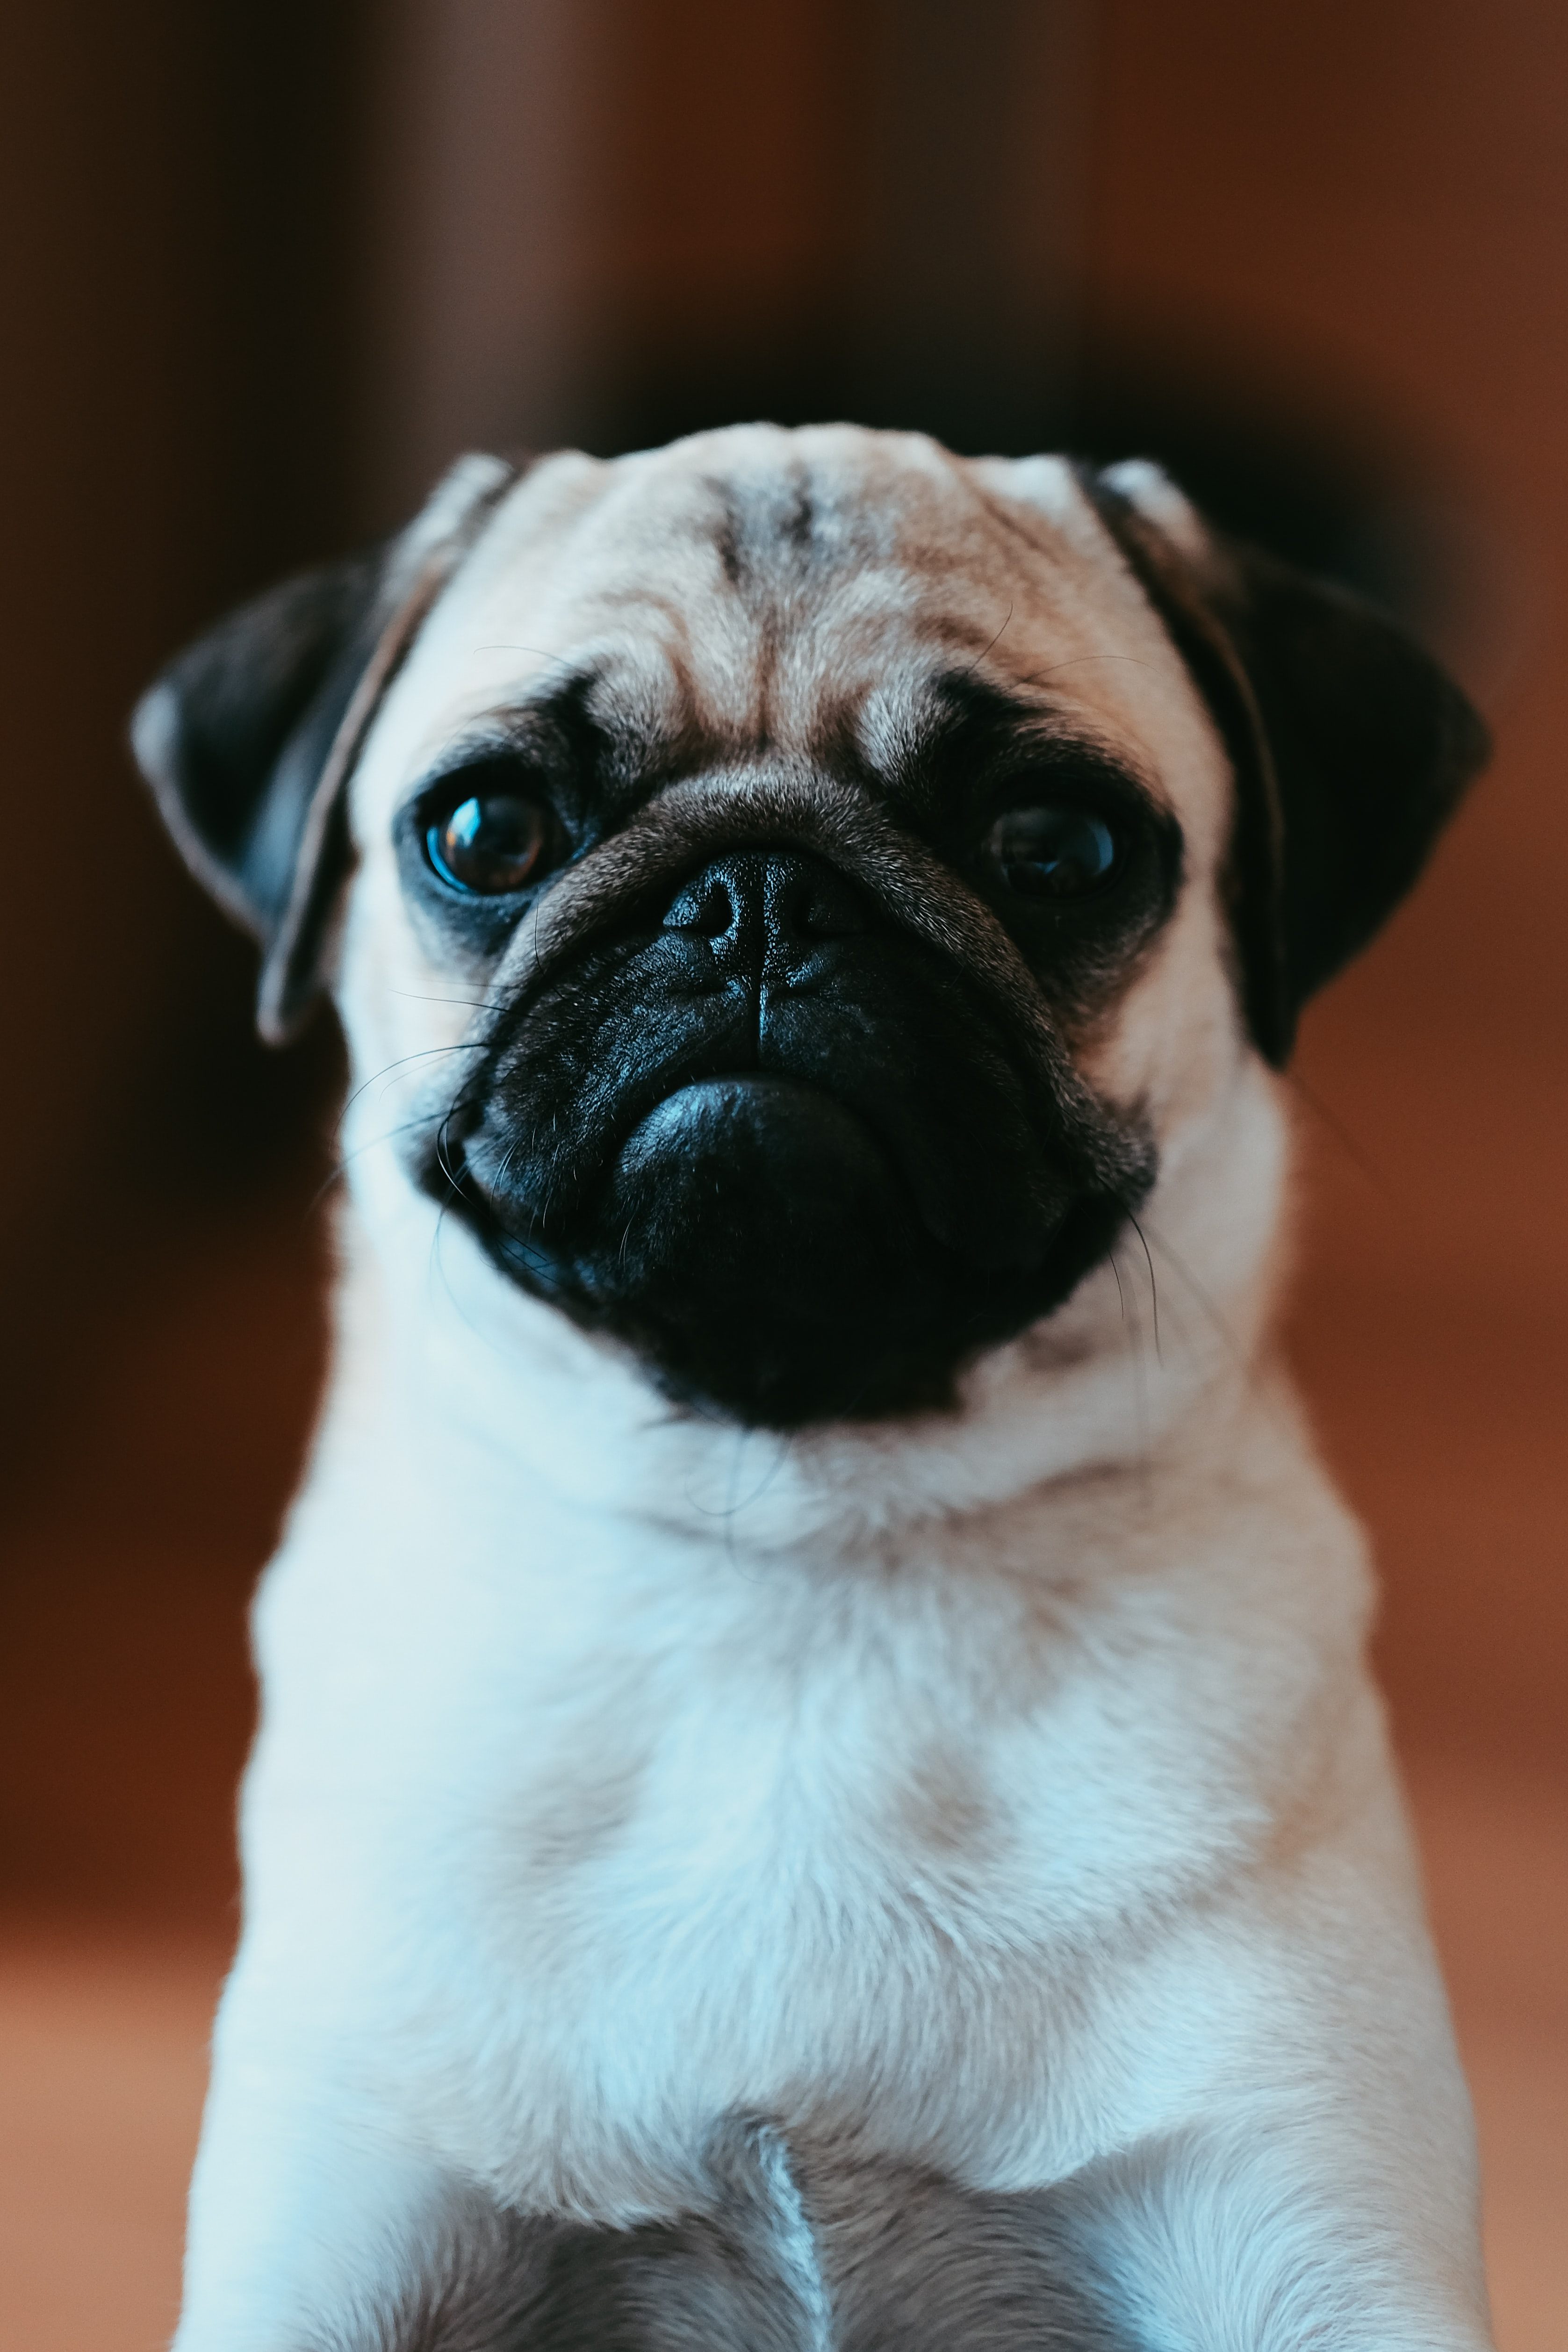 143206 download wallpaper Animals, Pug, Pet, Dog, Nice, Sweetheart, Sight, Opinion screensavers and pictures for free